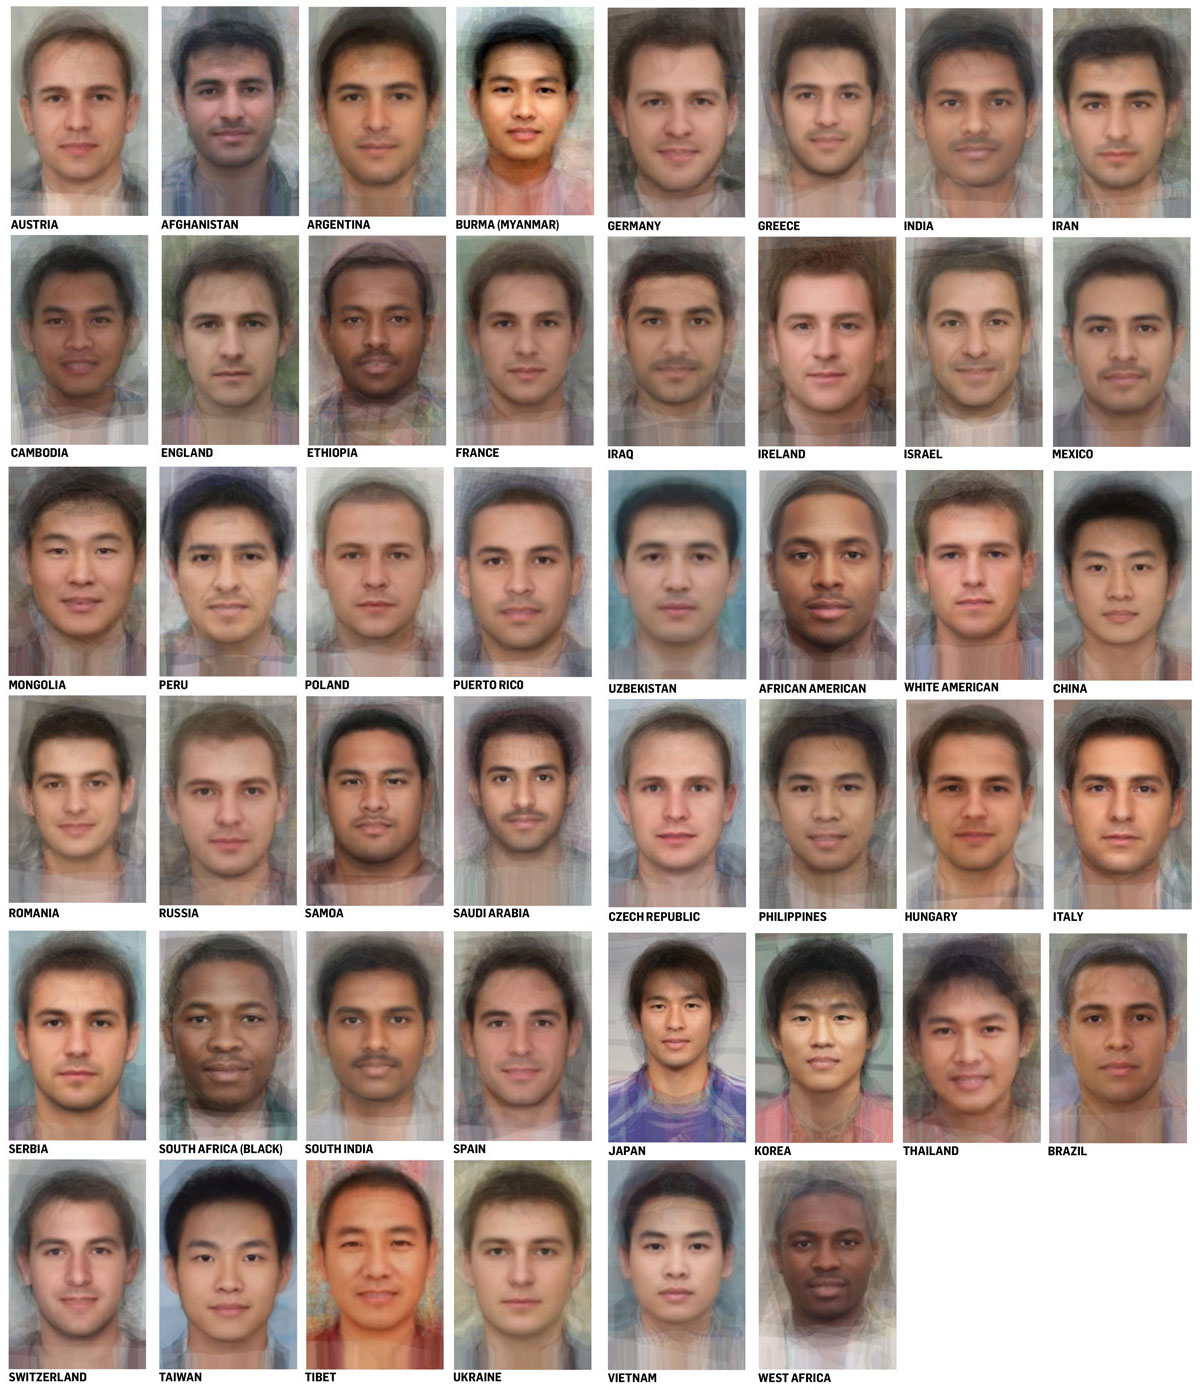 Average Faces From Around The World Including Hollywood Actors - Earthly Mission-9592